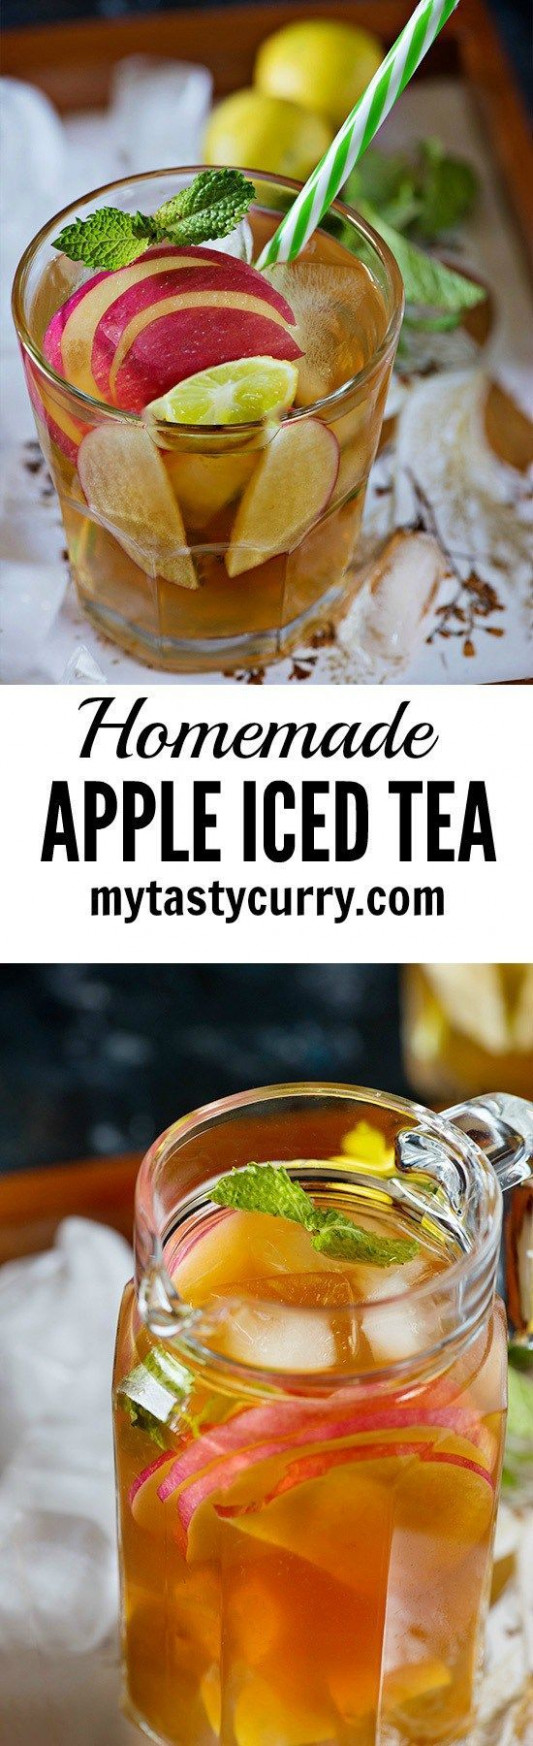 Homemade Apple Iced Tea | Recipe | Drinks for Any Occasion ...